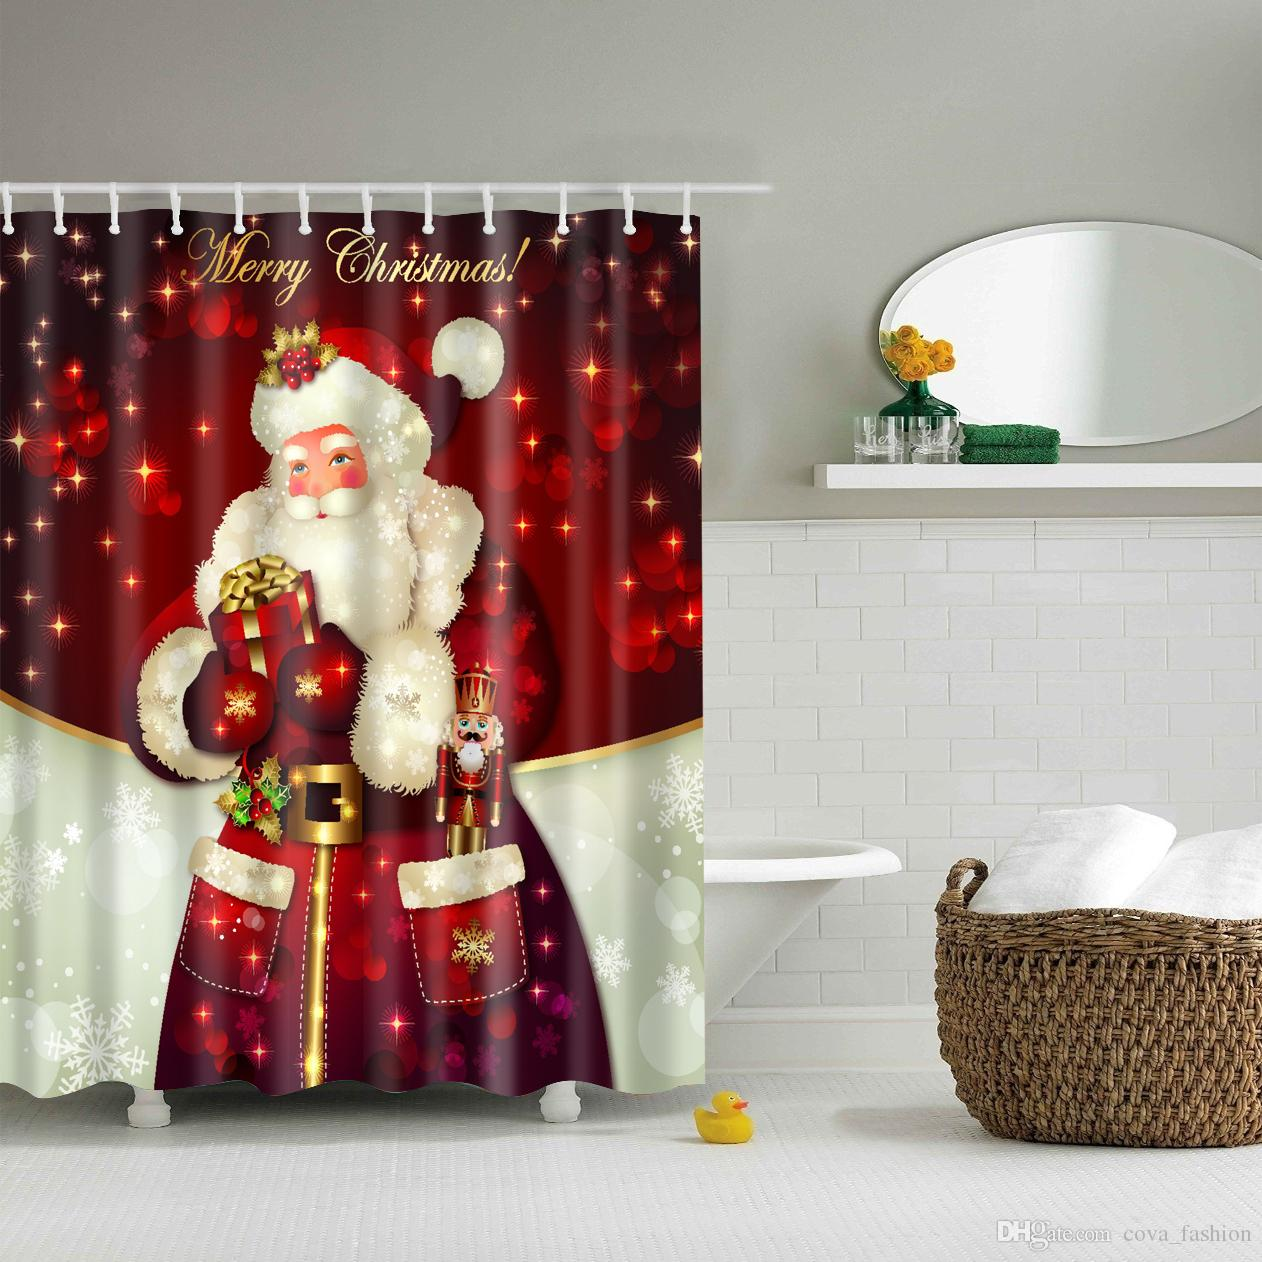 Christmas Bathroom Curtains.30 Styles Christmas Shower Curtains Snowman Santa Claus Designs Waterproof Polyester Bathroom Shower Curtains Bath Curtain Uk 2019 From Cova Fashion